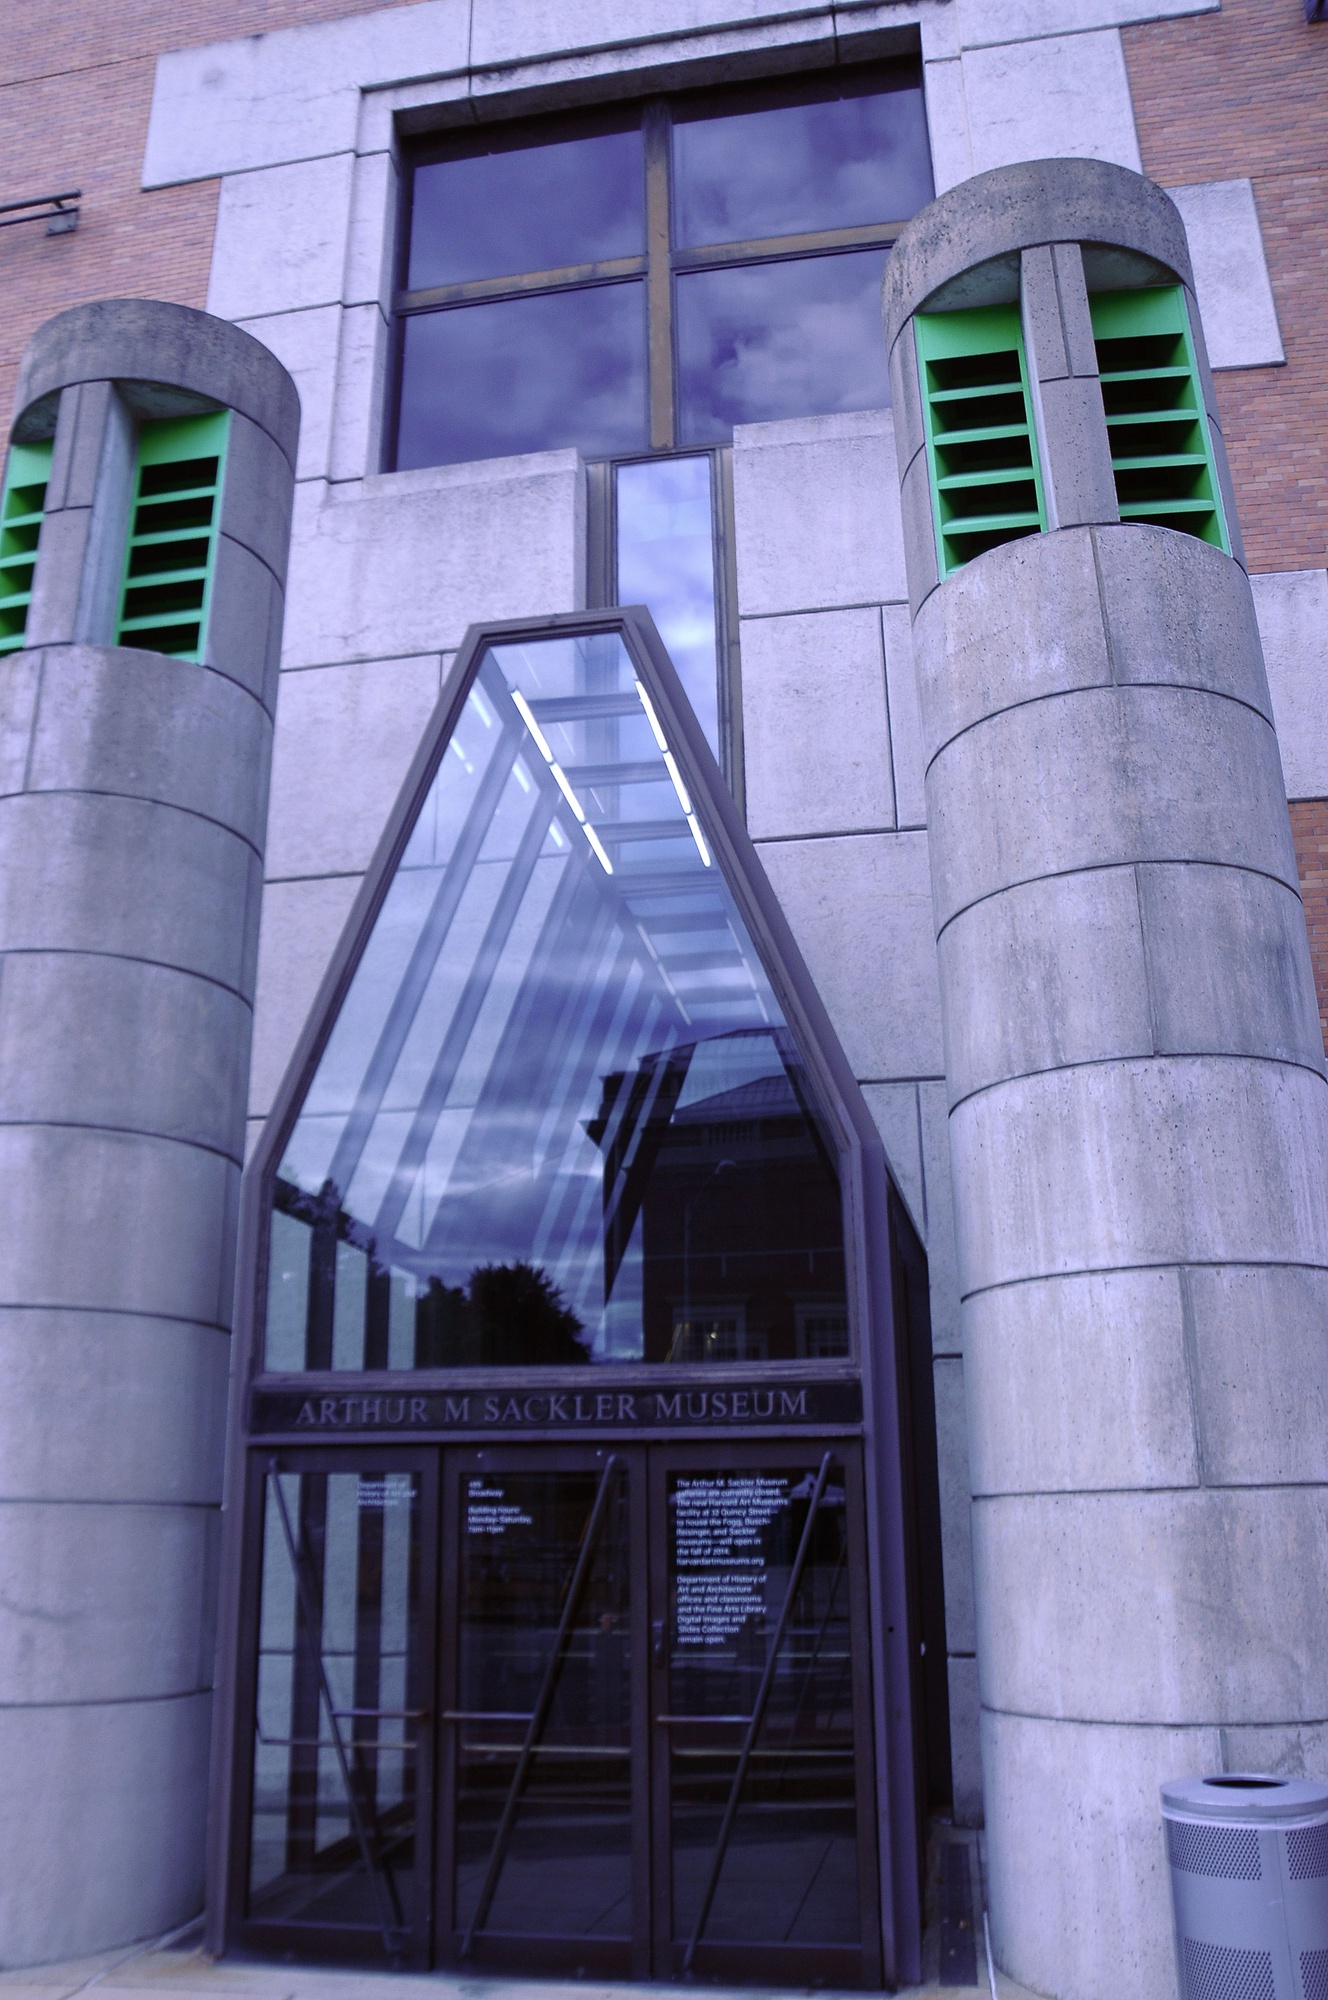 These modern geometric glass doors mark the entrance to the Arthur M. Sackler Museum.